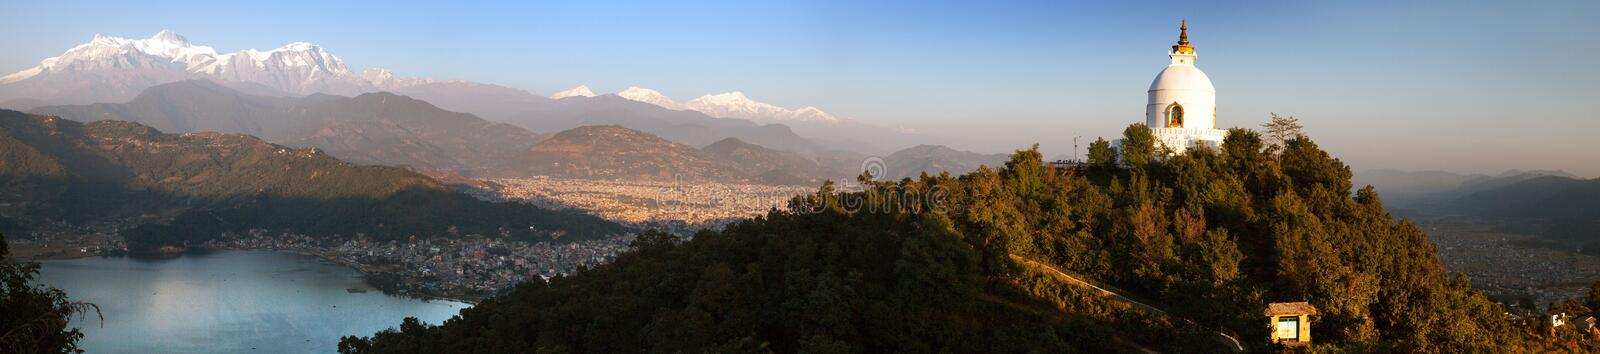 Annapurna, Manaslu, world peace stupa, Pokhara. Evening panoramic view of world peace stupa, Phewa lake, Pokhara and great himalayan range, mount Annapurna royalty free stock images